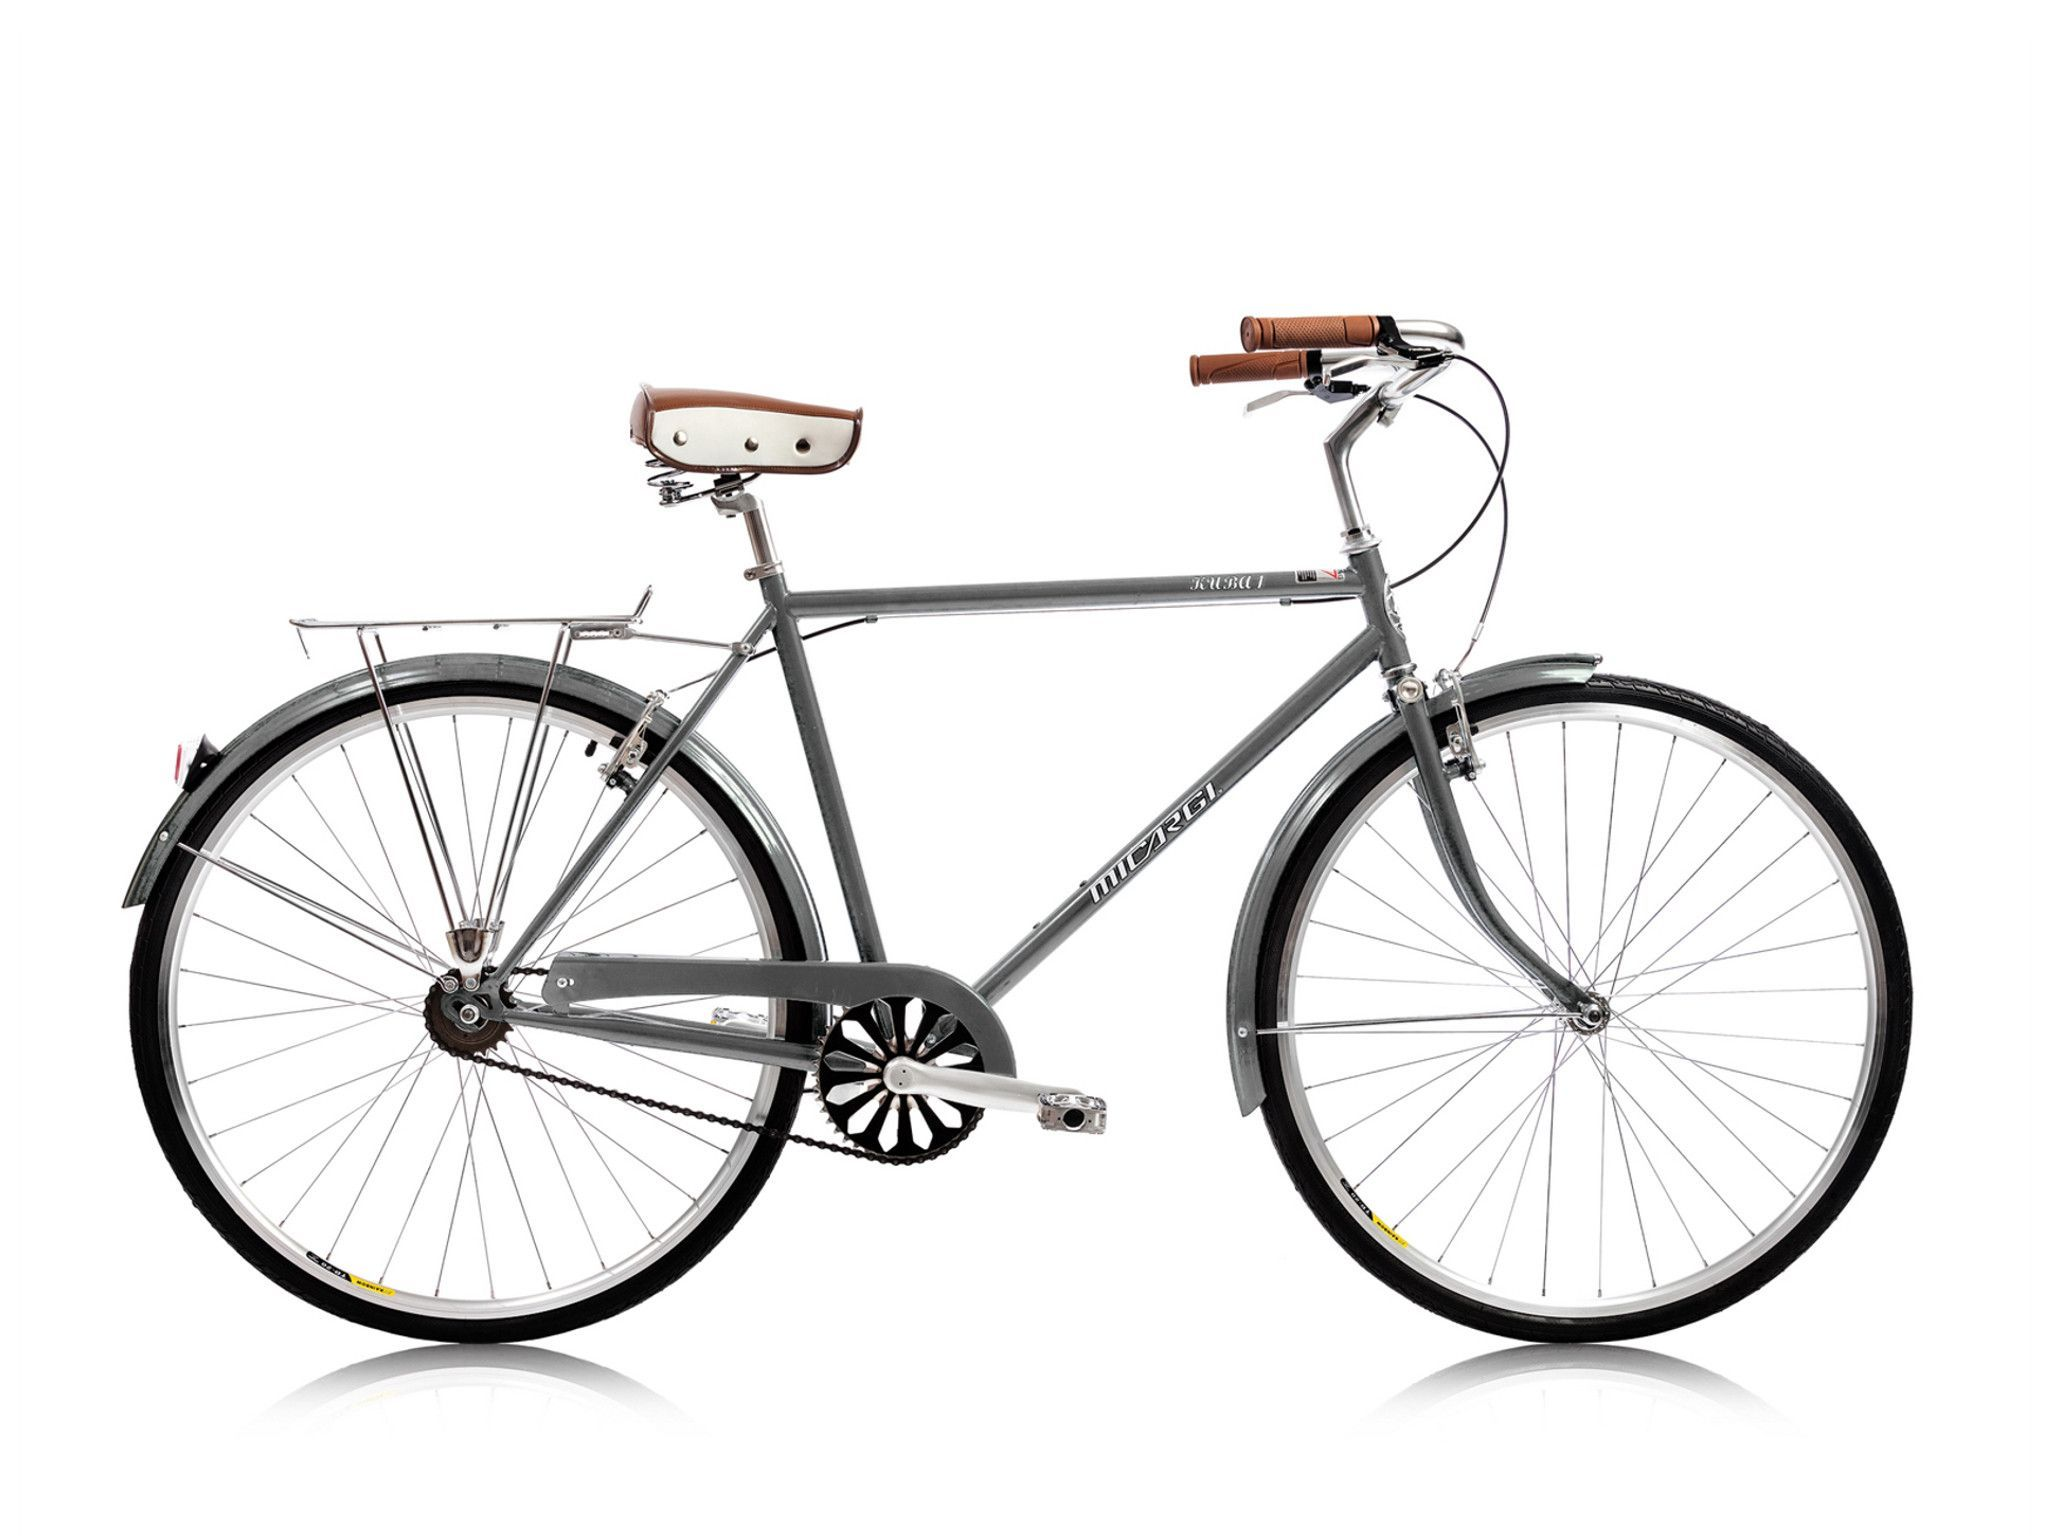 Micargi Kuba 1 Single Speed City Commuter Bike Grey Vintage Euro Styl Kookabike